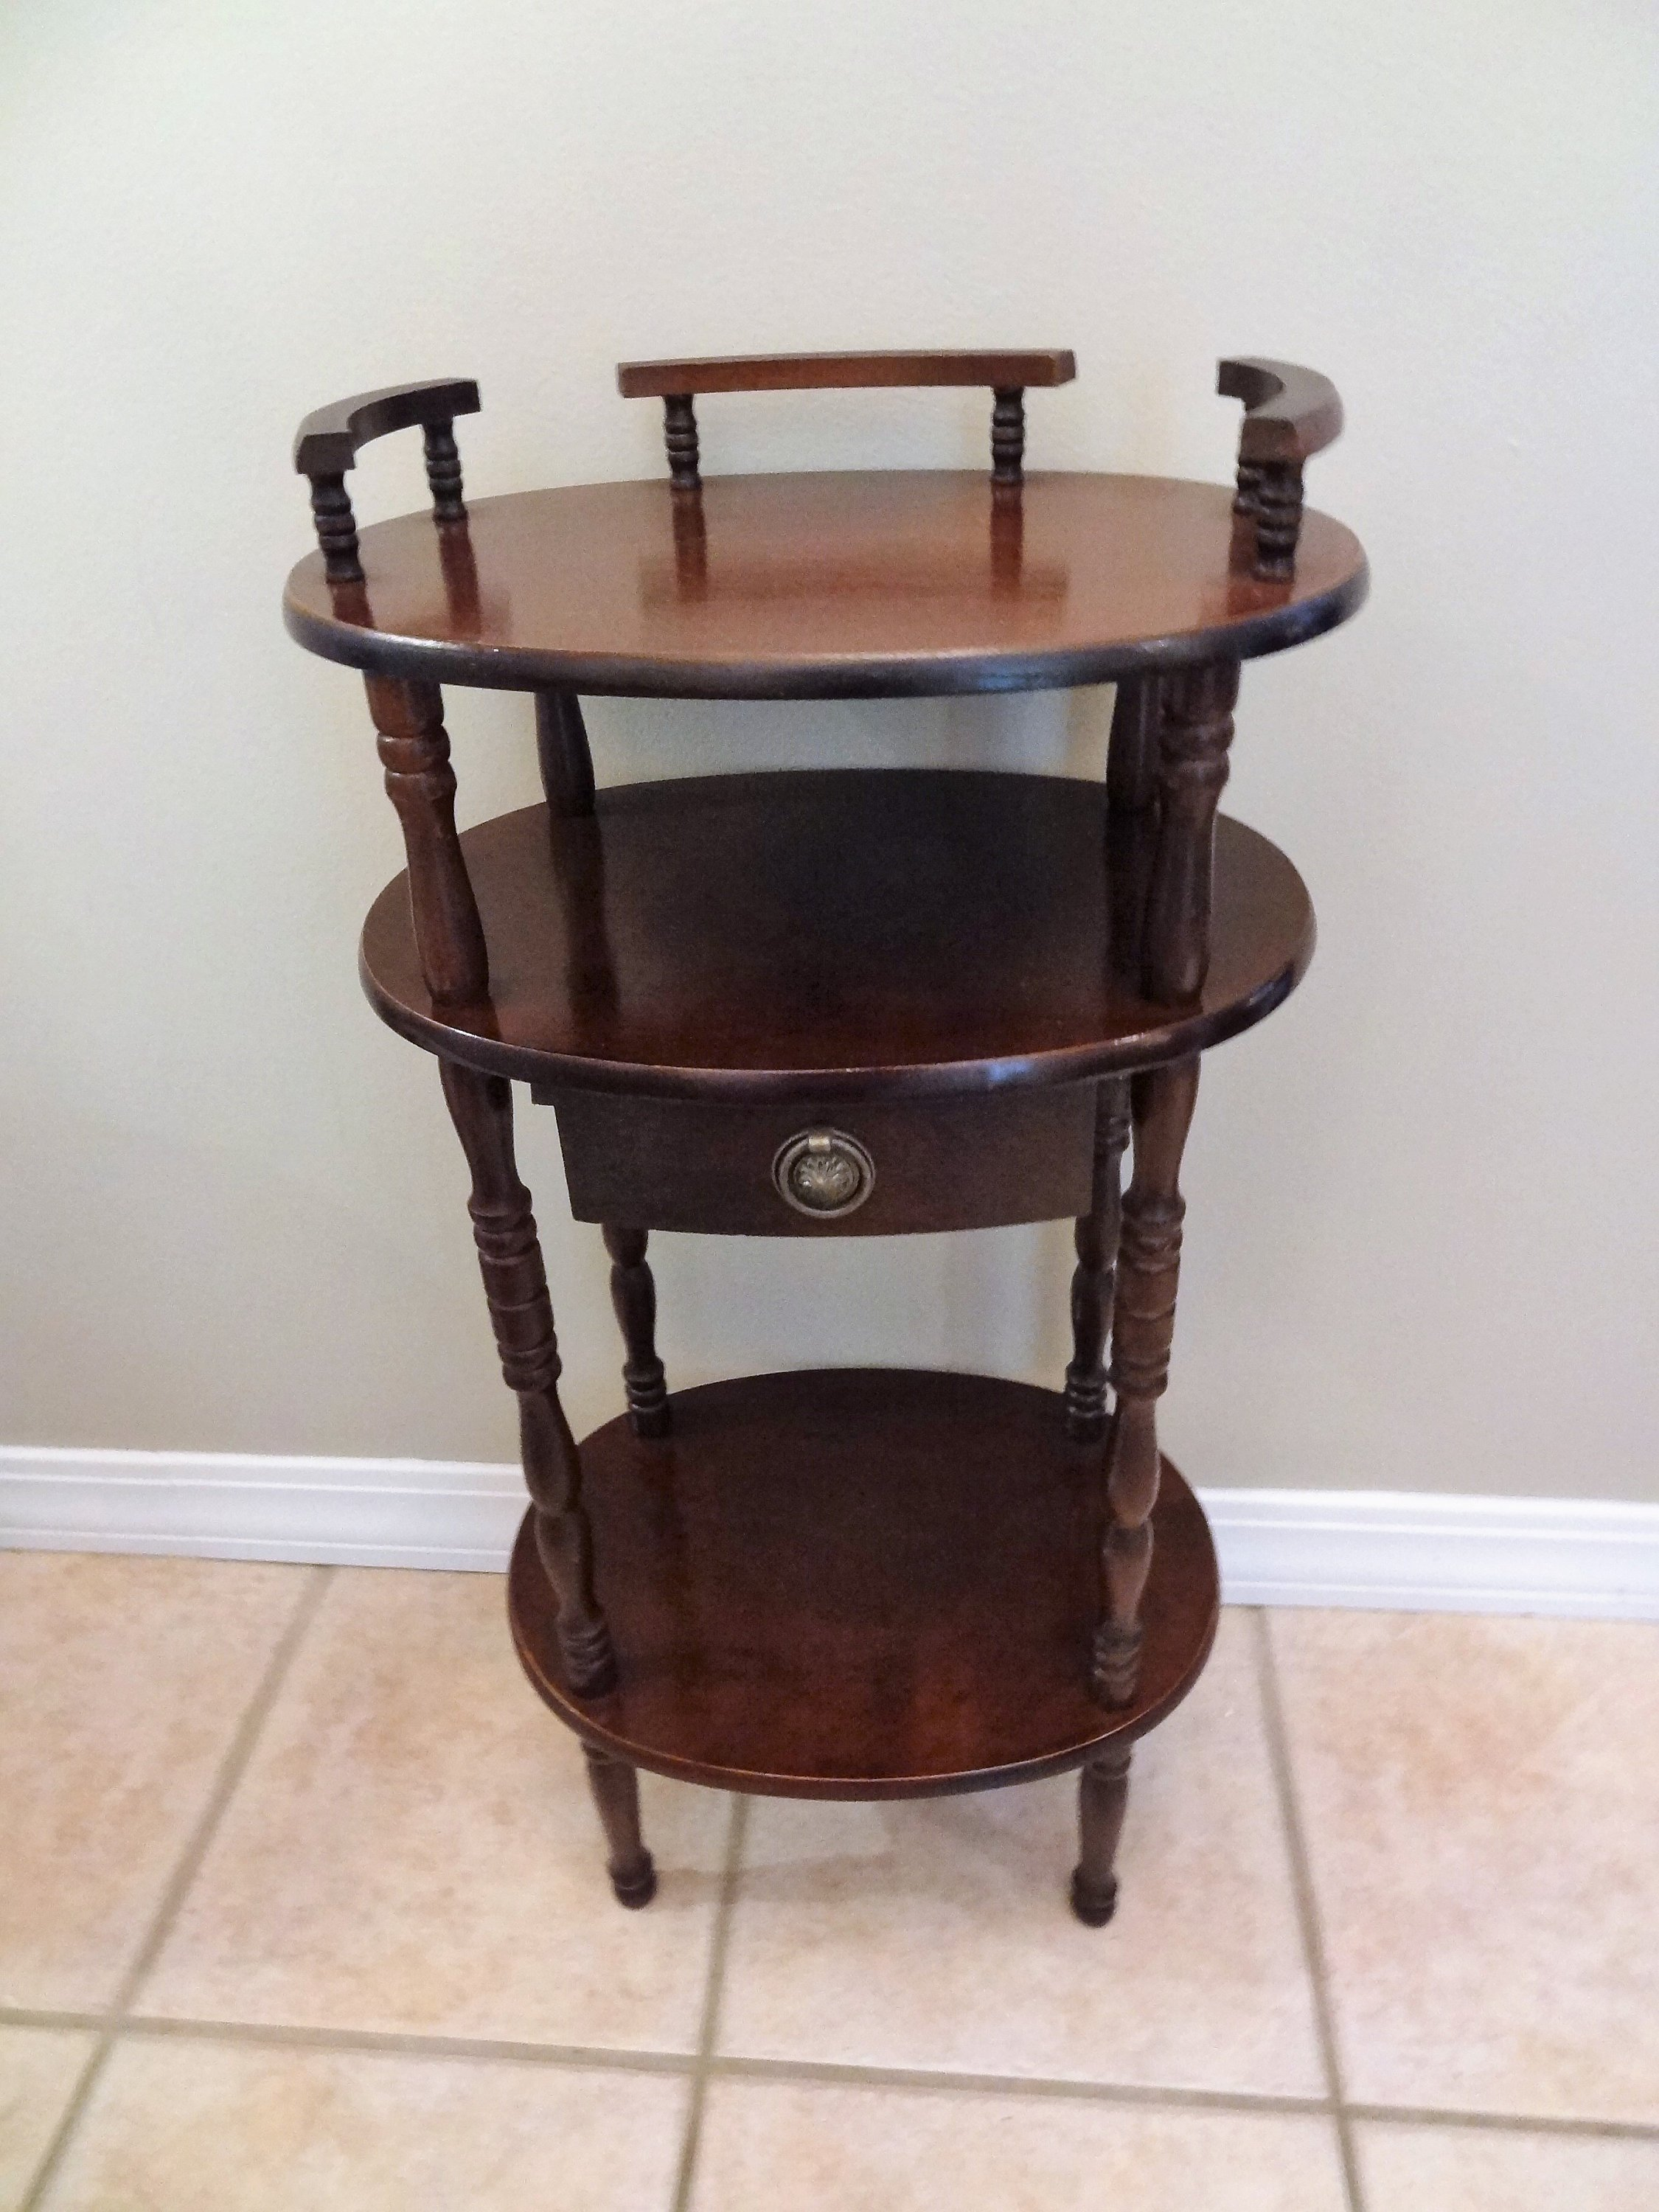 vintage wooden side table shelf old telephone etsy fullxfull antique accent quality patio furniture keter cooler piece coffee set extra long narrow console brown wicker shelby